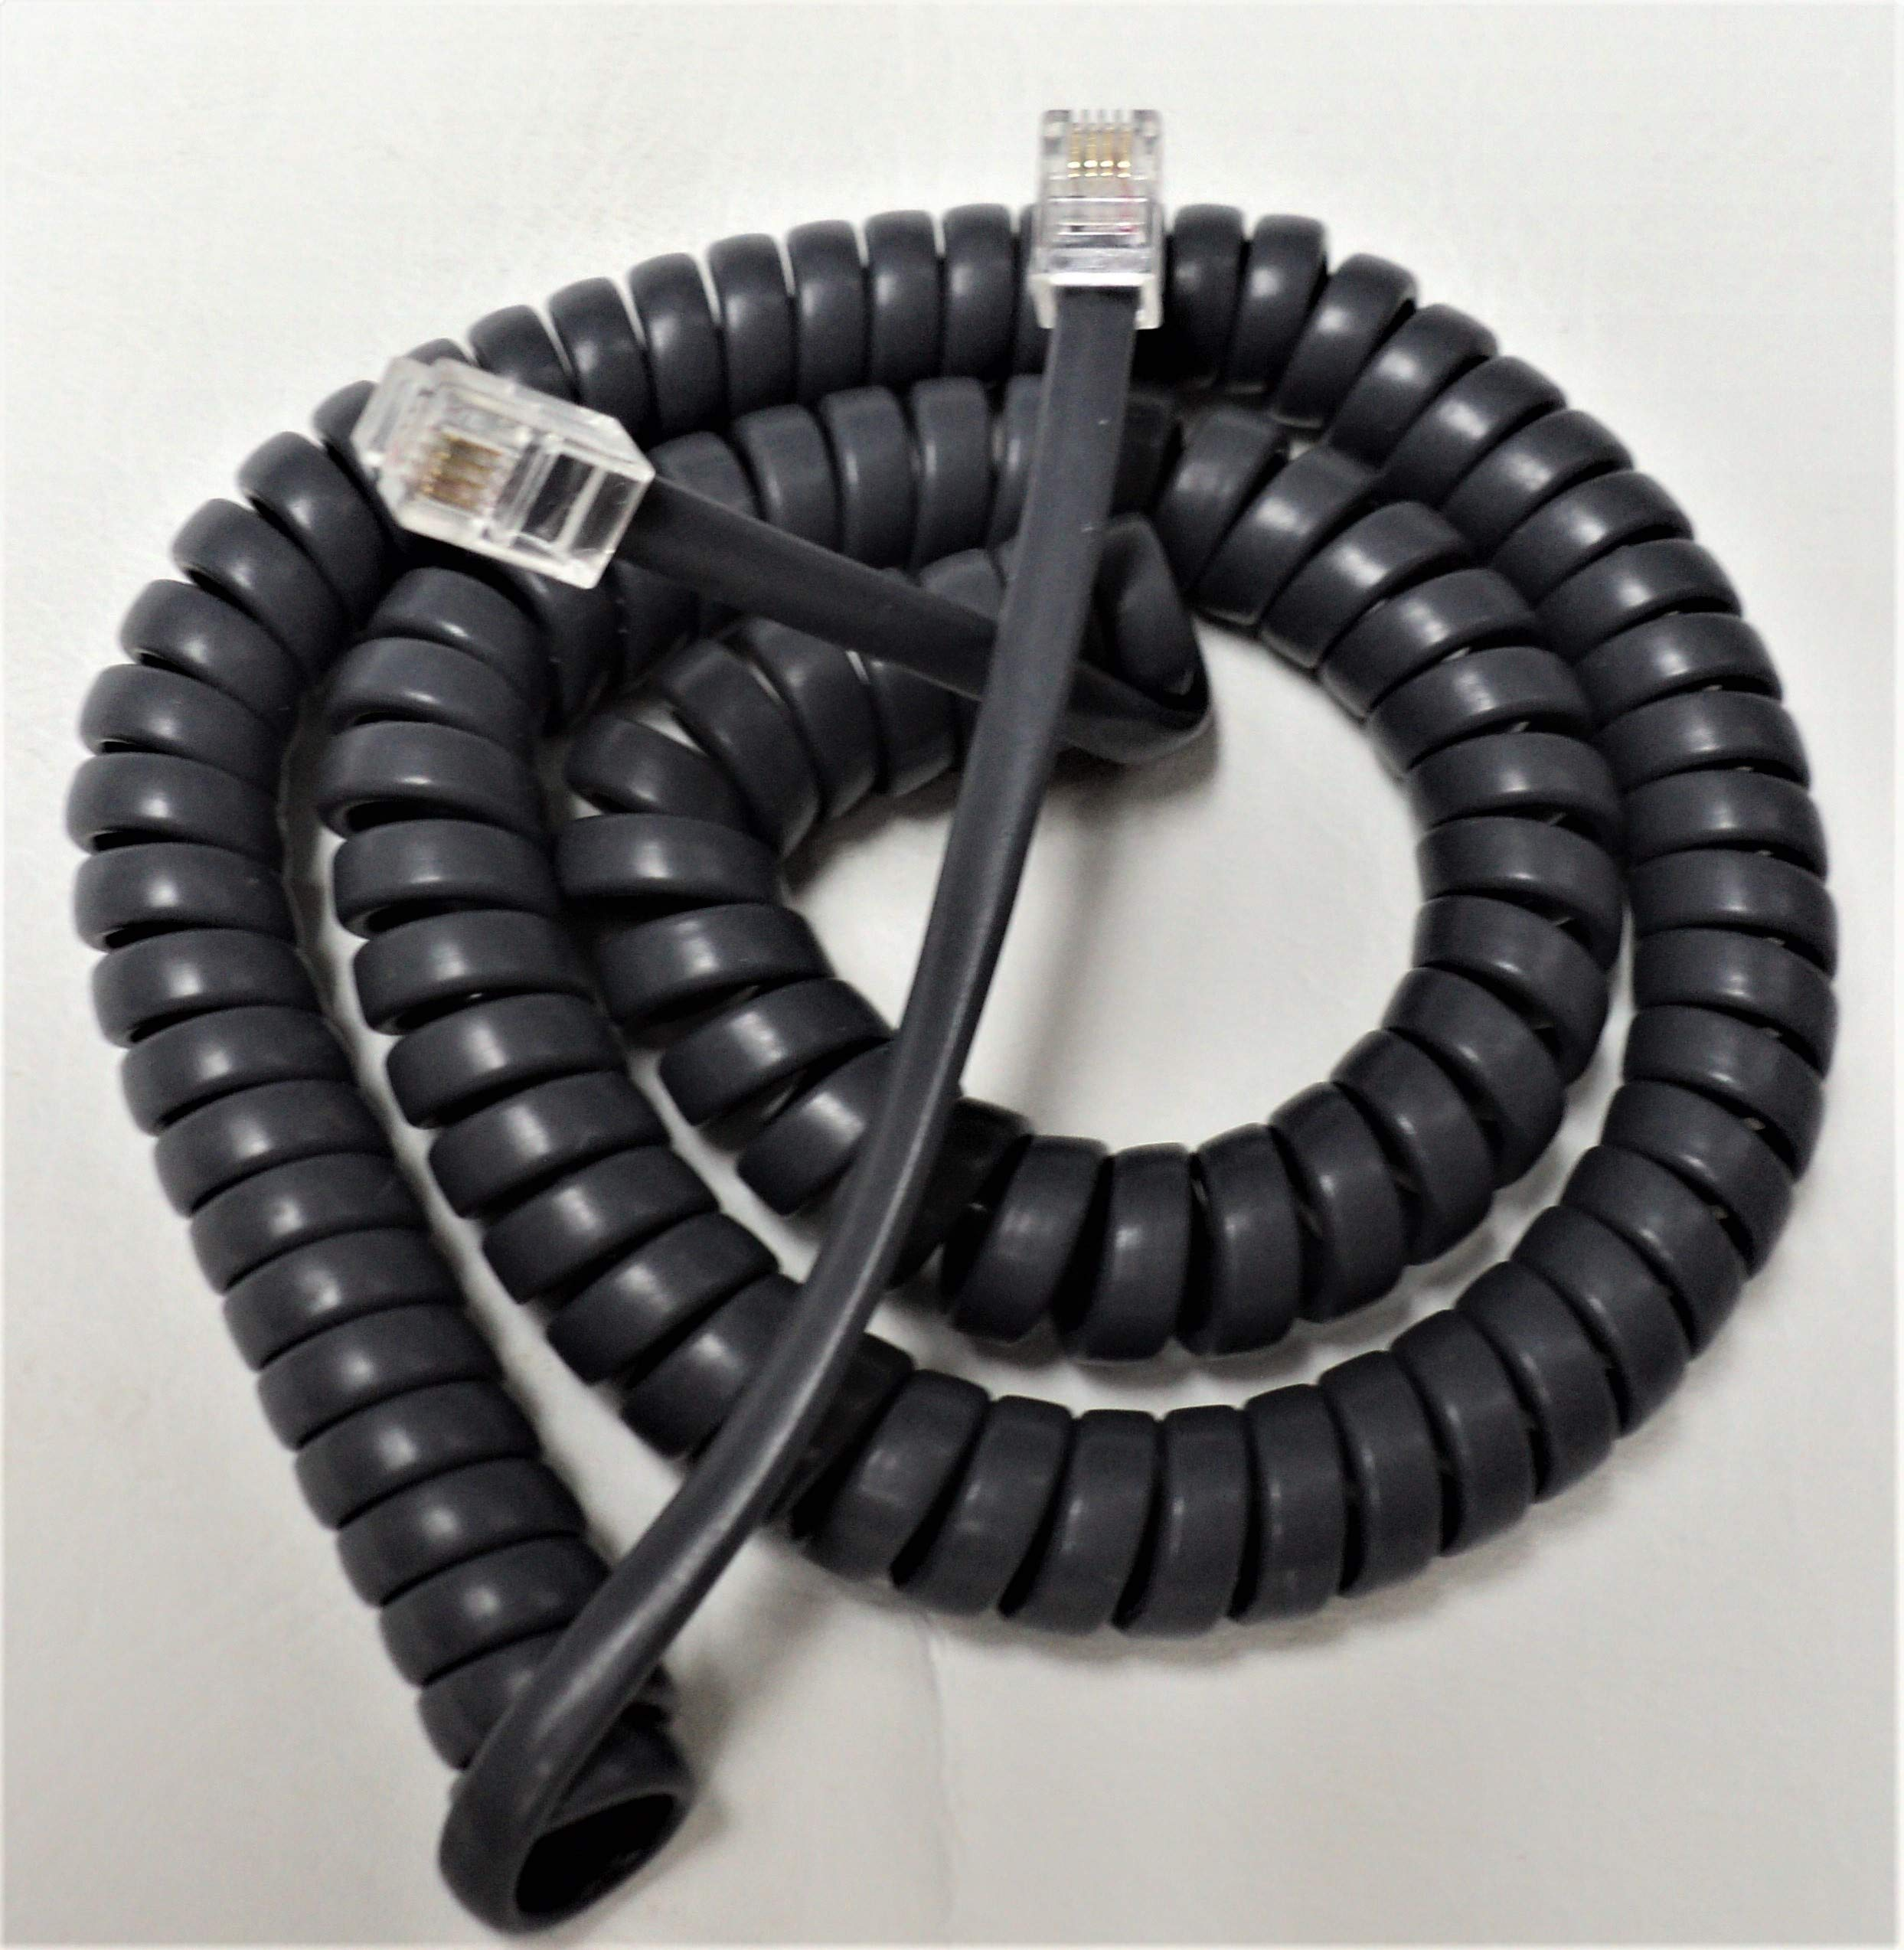 Lot of 50 Gray 12' Ft Handset Cords for Avaya Digital/IP Phone 2400 4600 5400 5600 Series 2410 2420 4610 4620 4620SW 4621 4630SW 5410 5420 5602 5602SW 5610 5610SW 5620 5620SW 5621SW by DIY-BizPhones